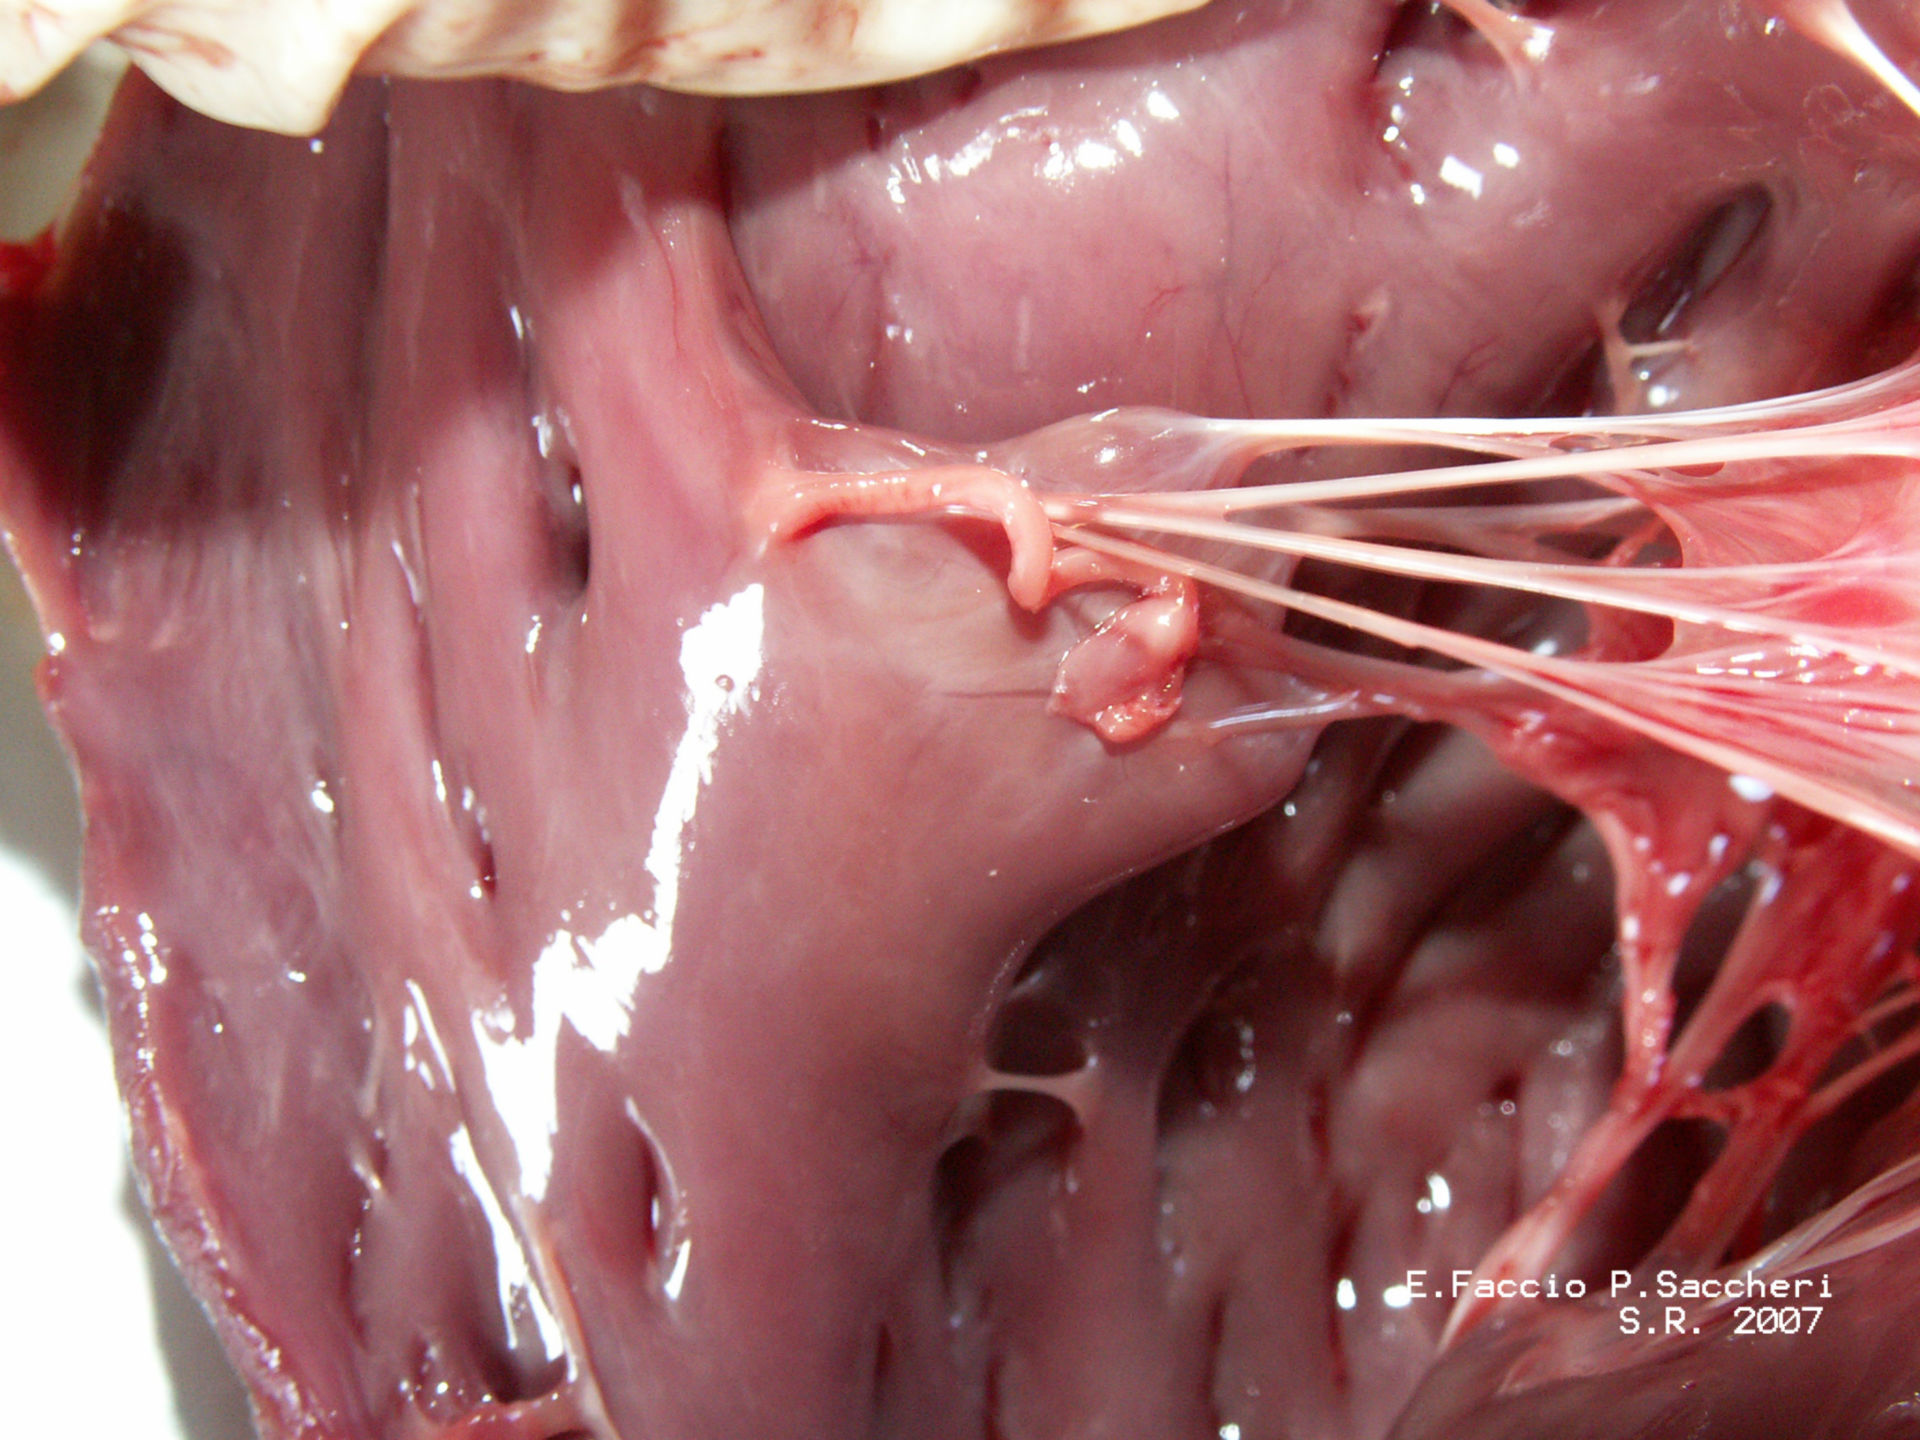 Papillary muscles and Chordae tendineae (2)